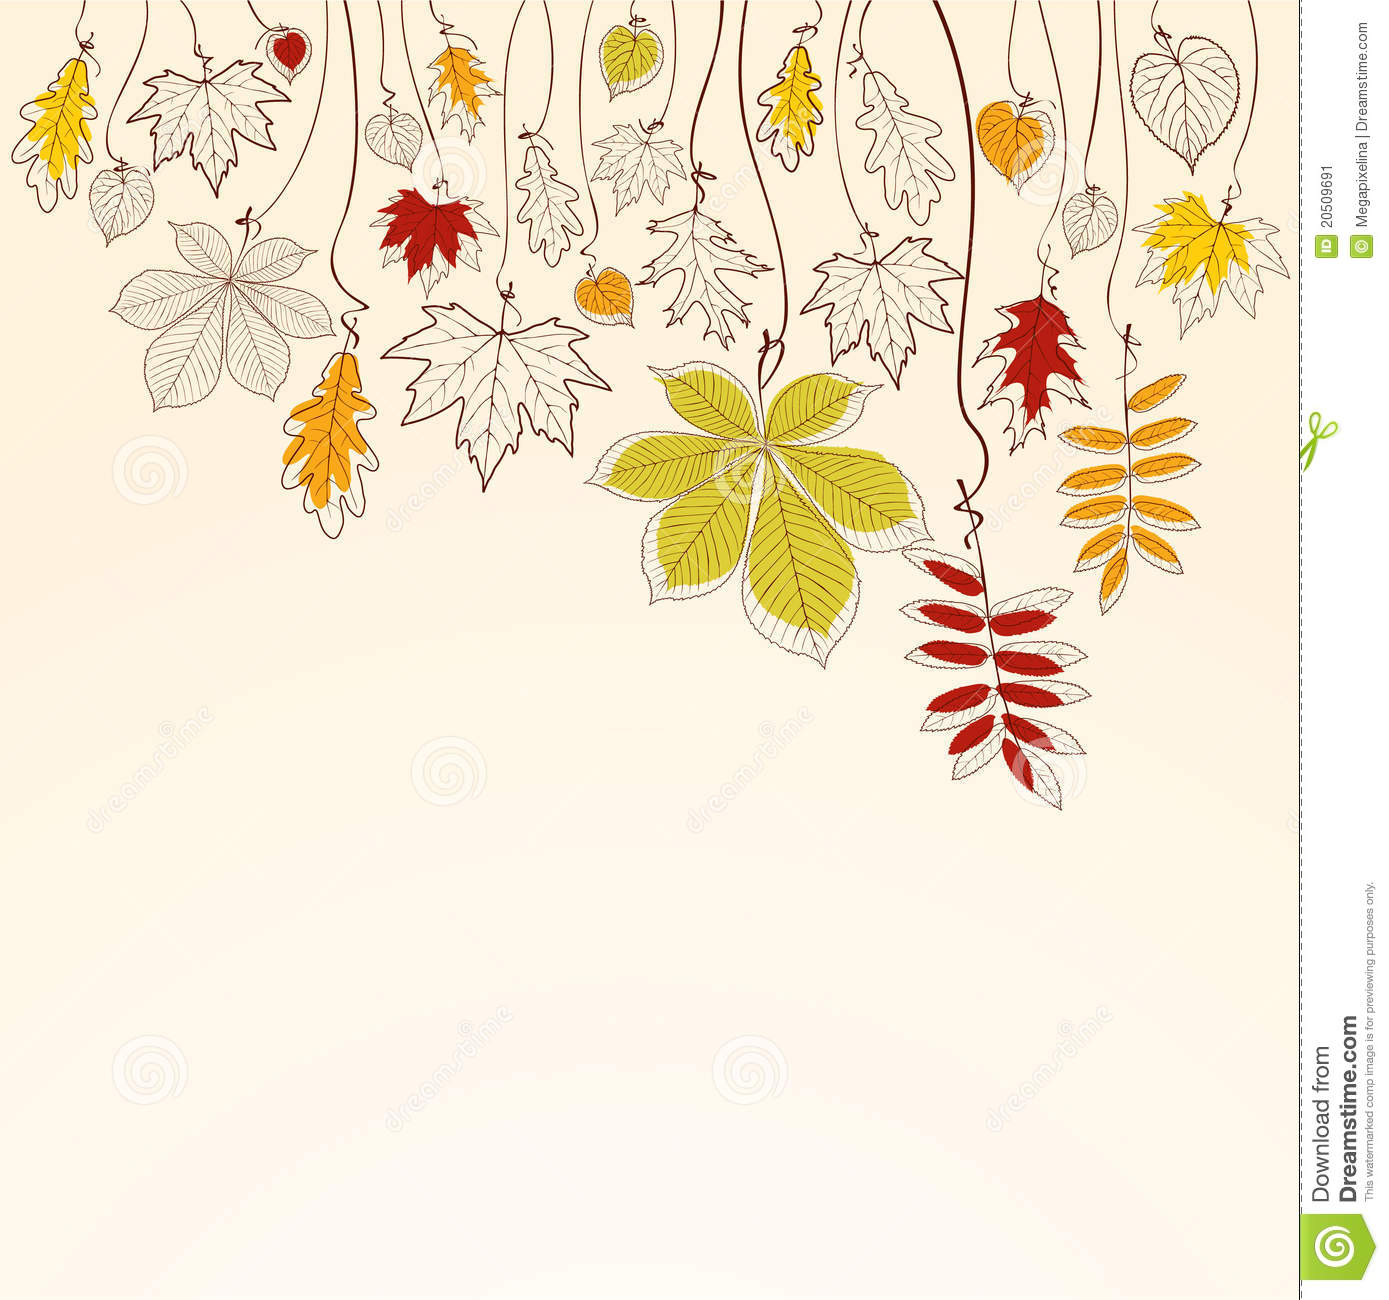 Autumn Tree Leaf Fall Animated Wallpaper Autumn Falling Leaves Background Stock Vector